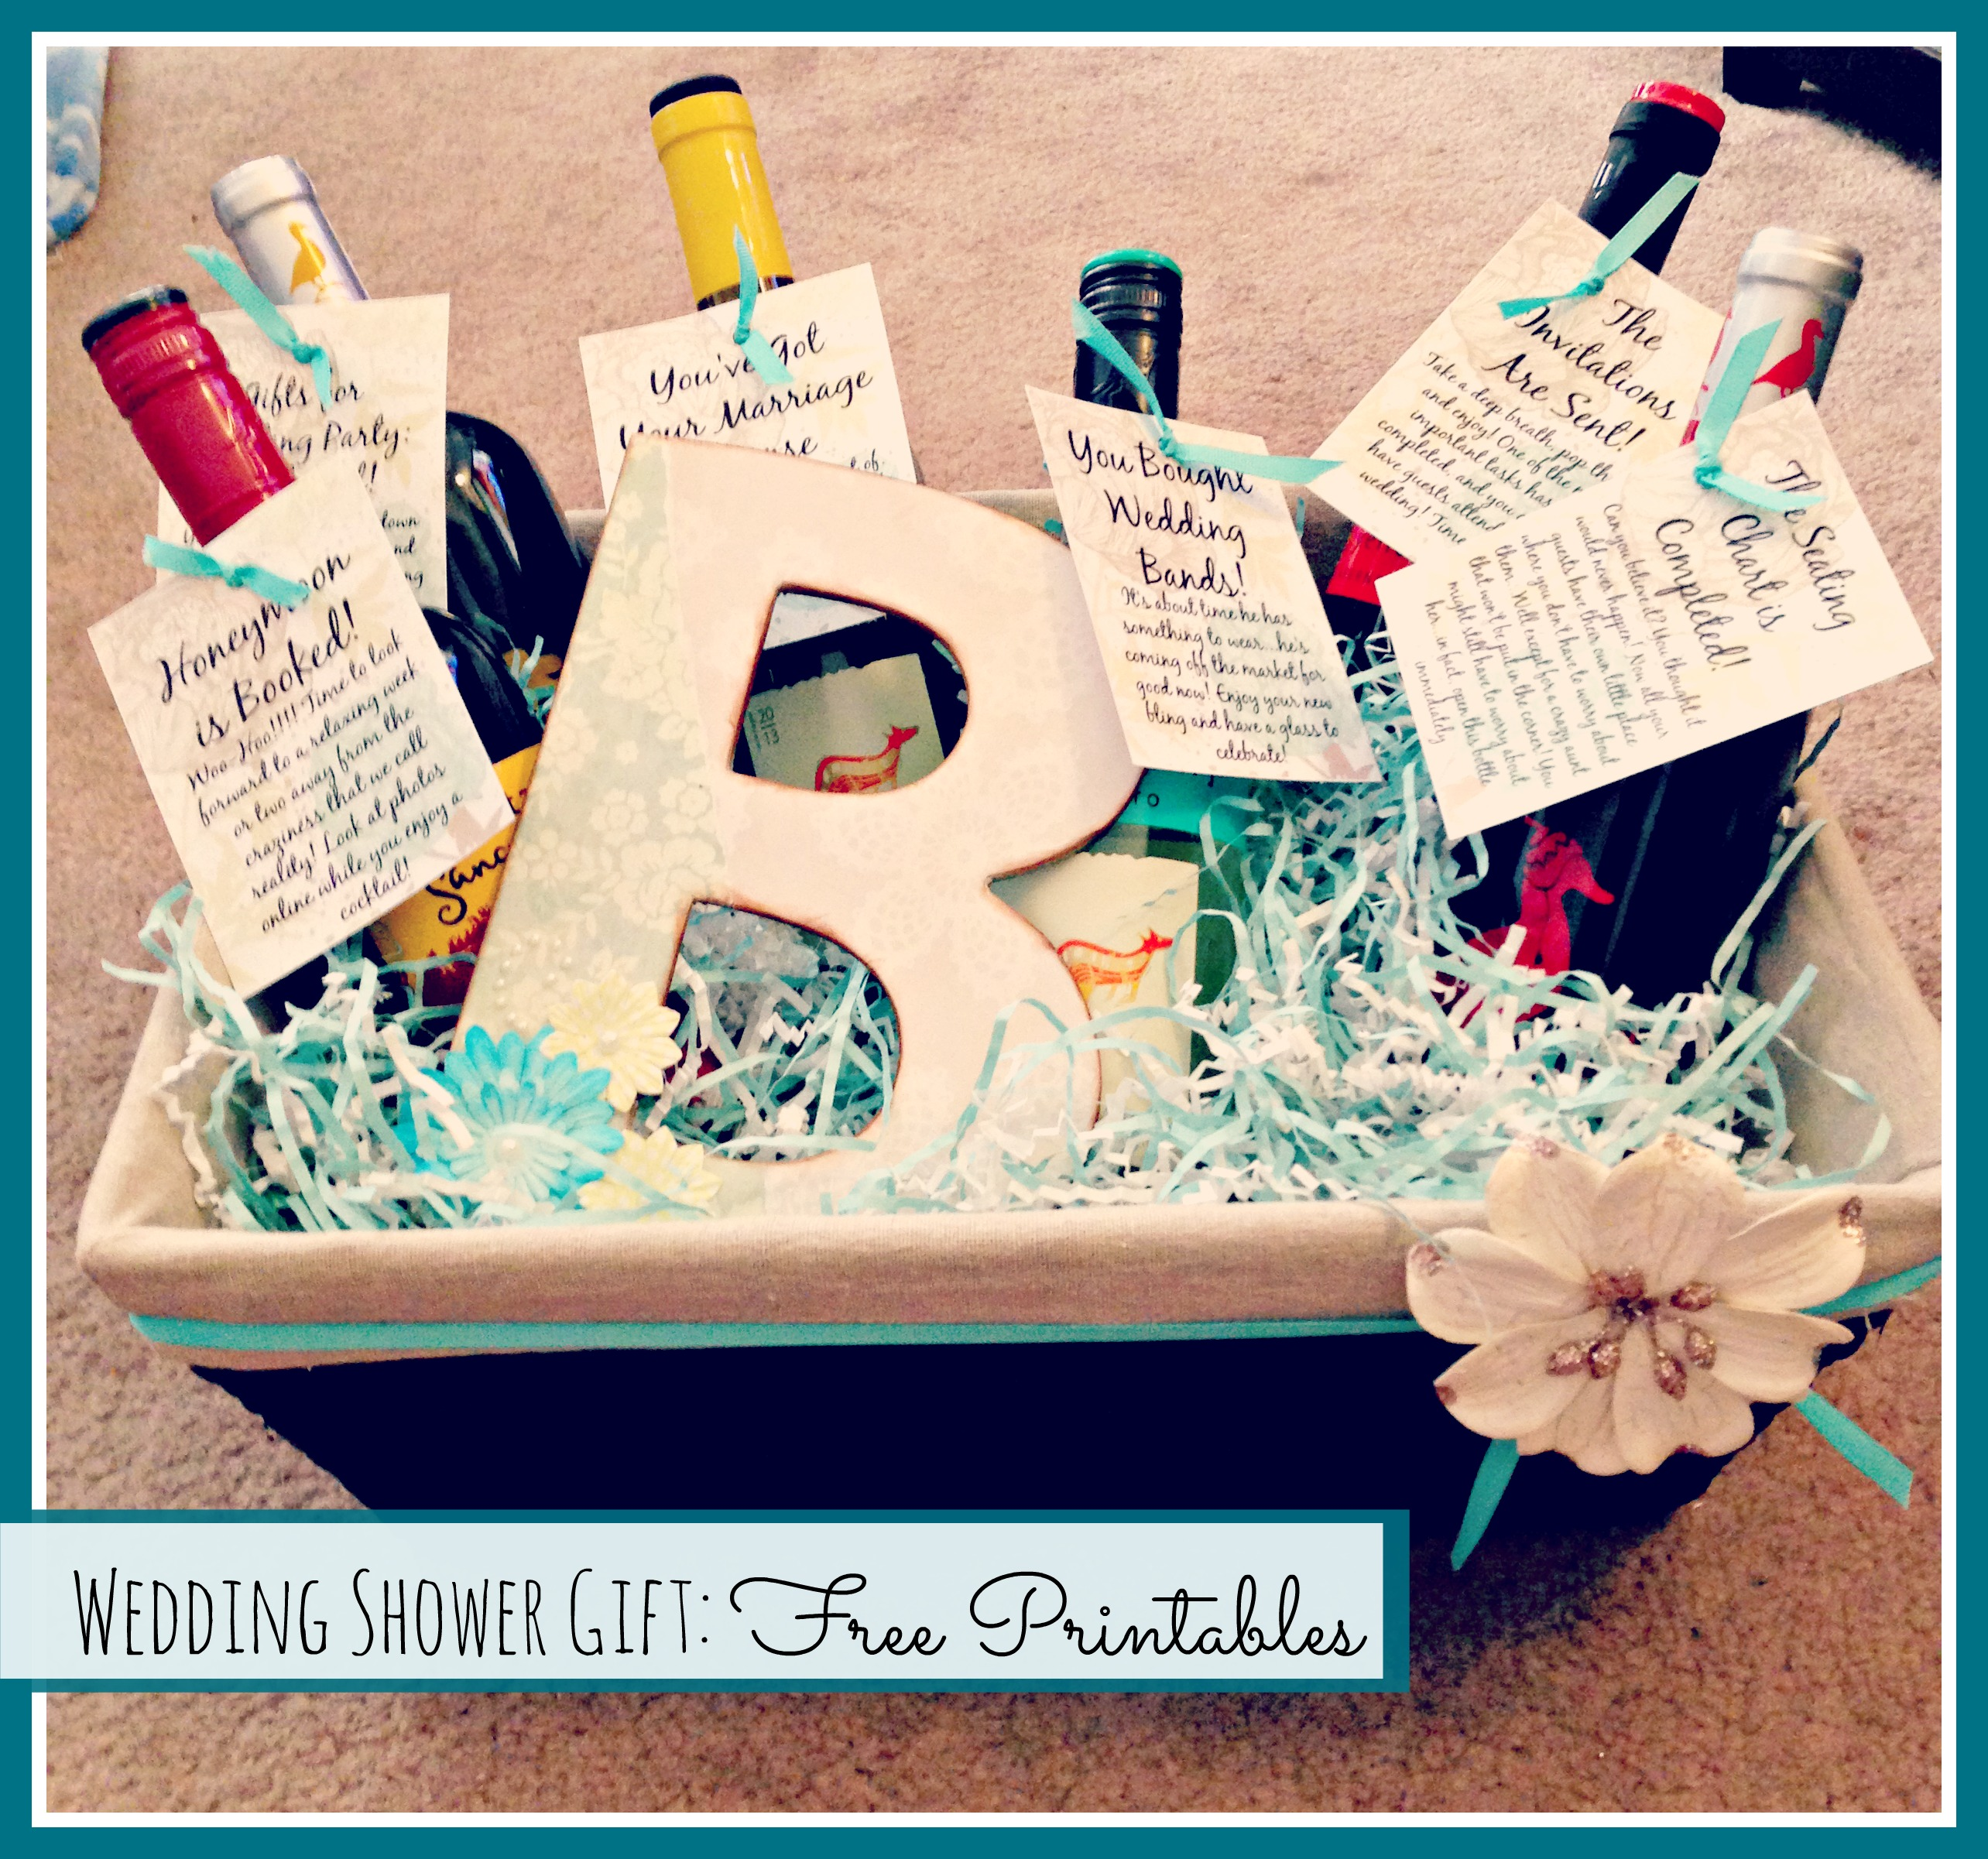 Proper Etiquette For Wedding Gift If Not Attending : summer another wedding season we have a minor amount of weddings ...